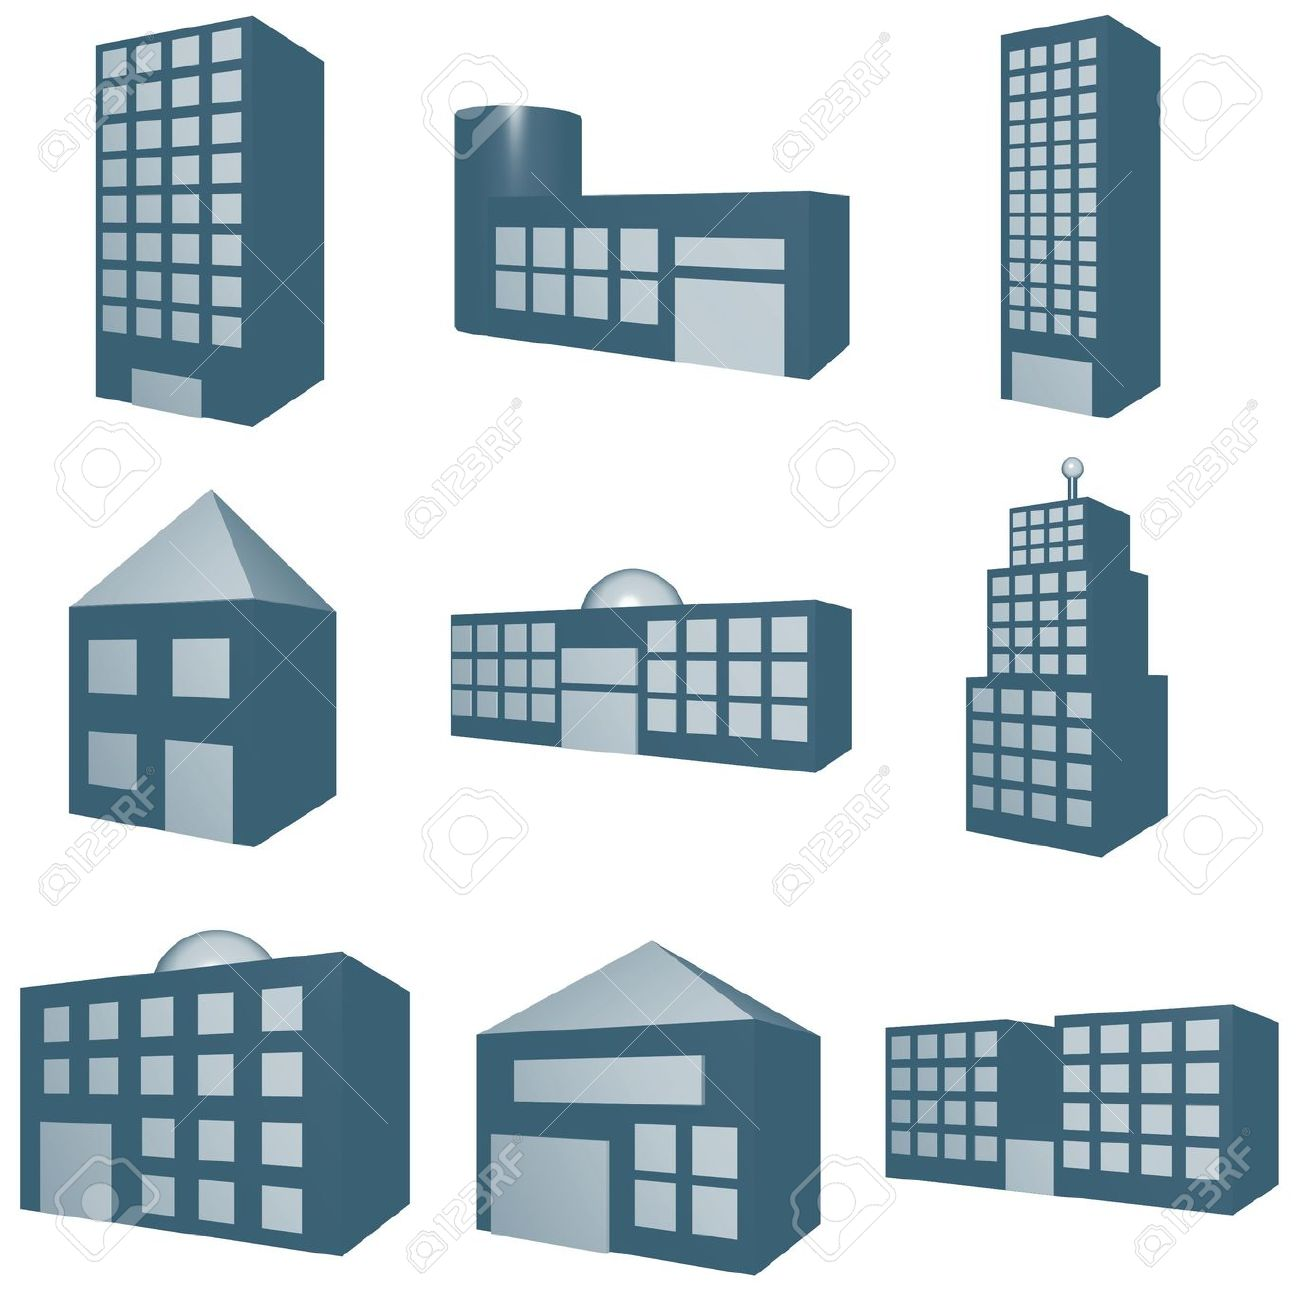 A Set Of Architecture Type Clip Art In 3d Blue Stock Photo.